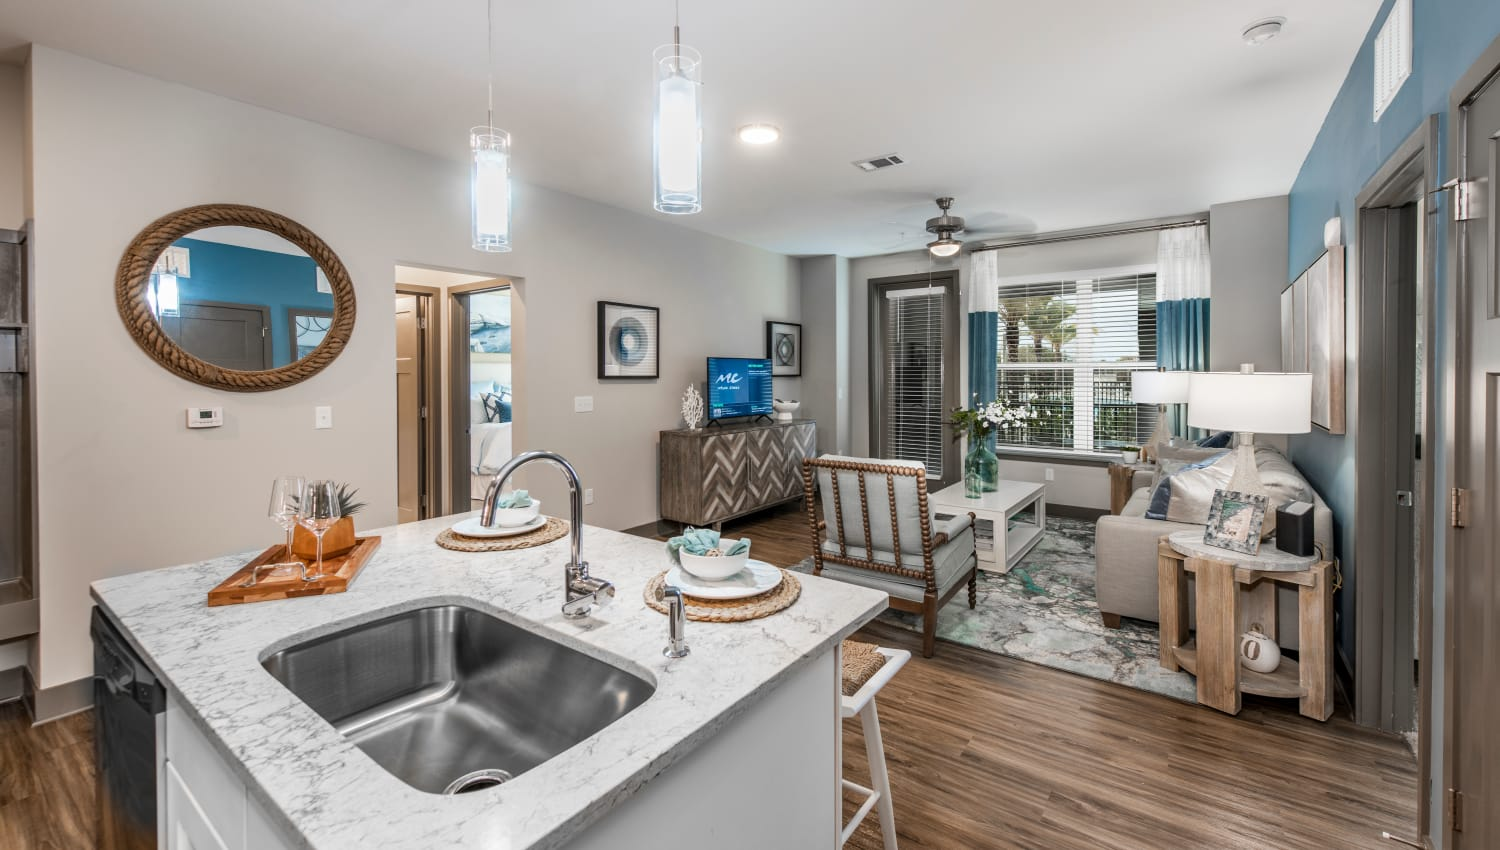 A kitchen overlooking the living room at Olympus Emerald Coast in Destin, Florida